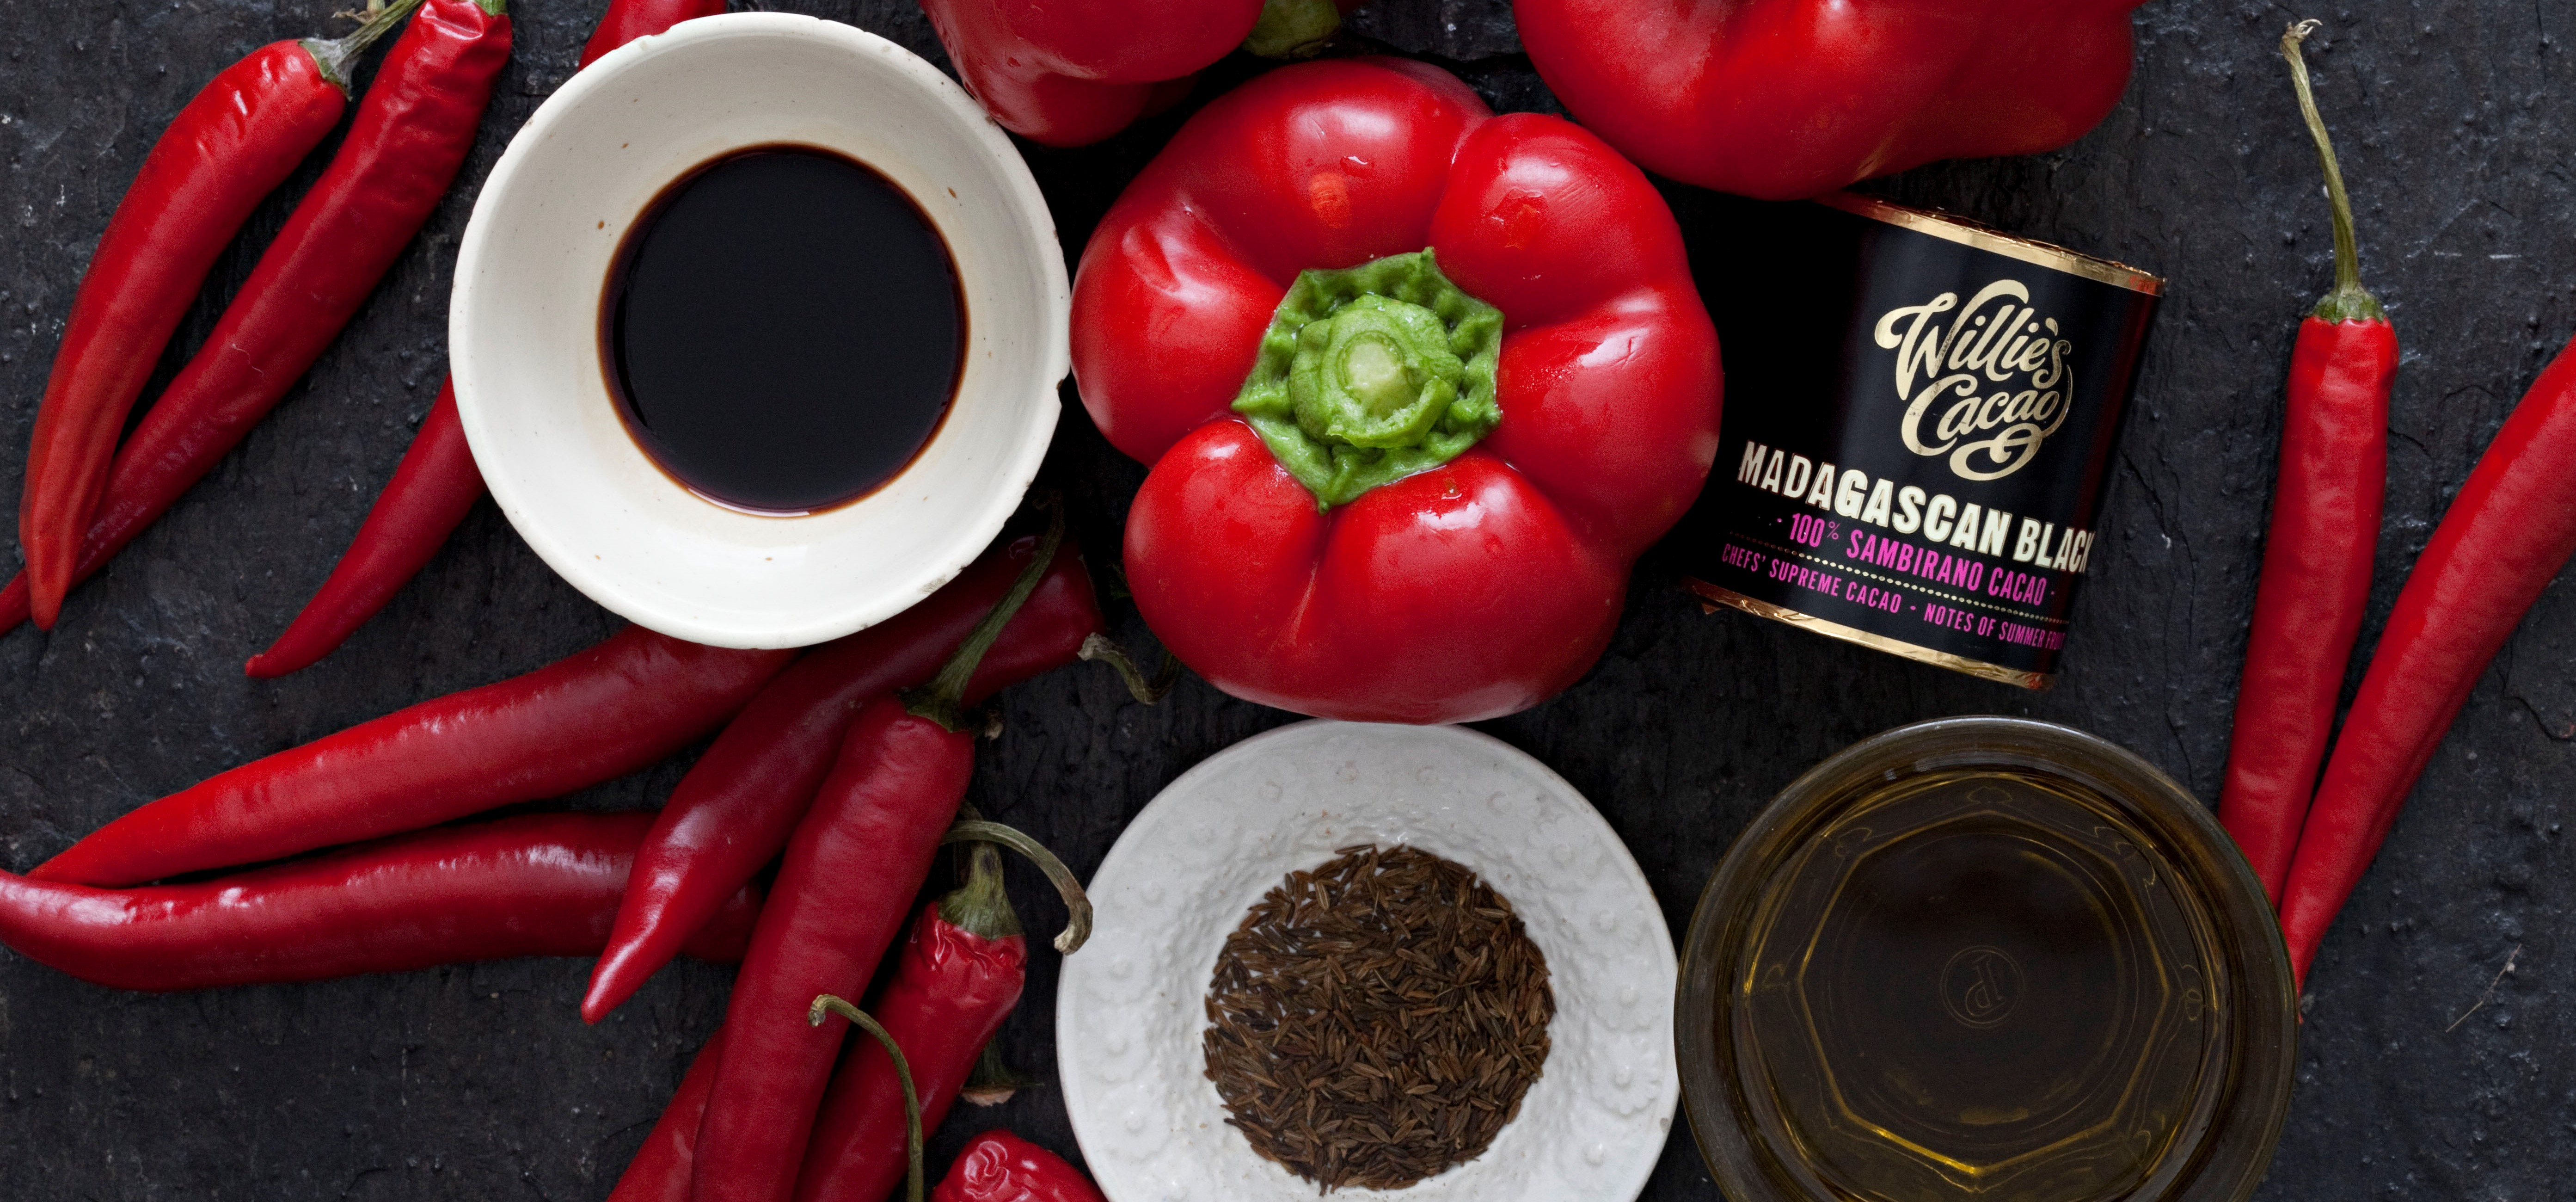 Roasted peppers and chillies harissa with 100% cacao Sambirano